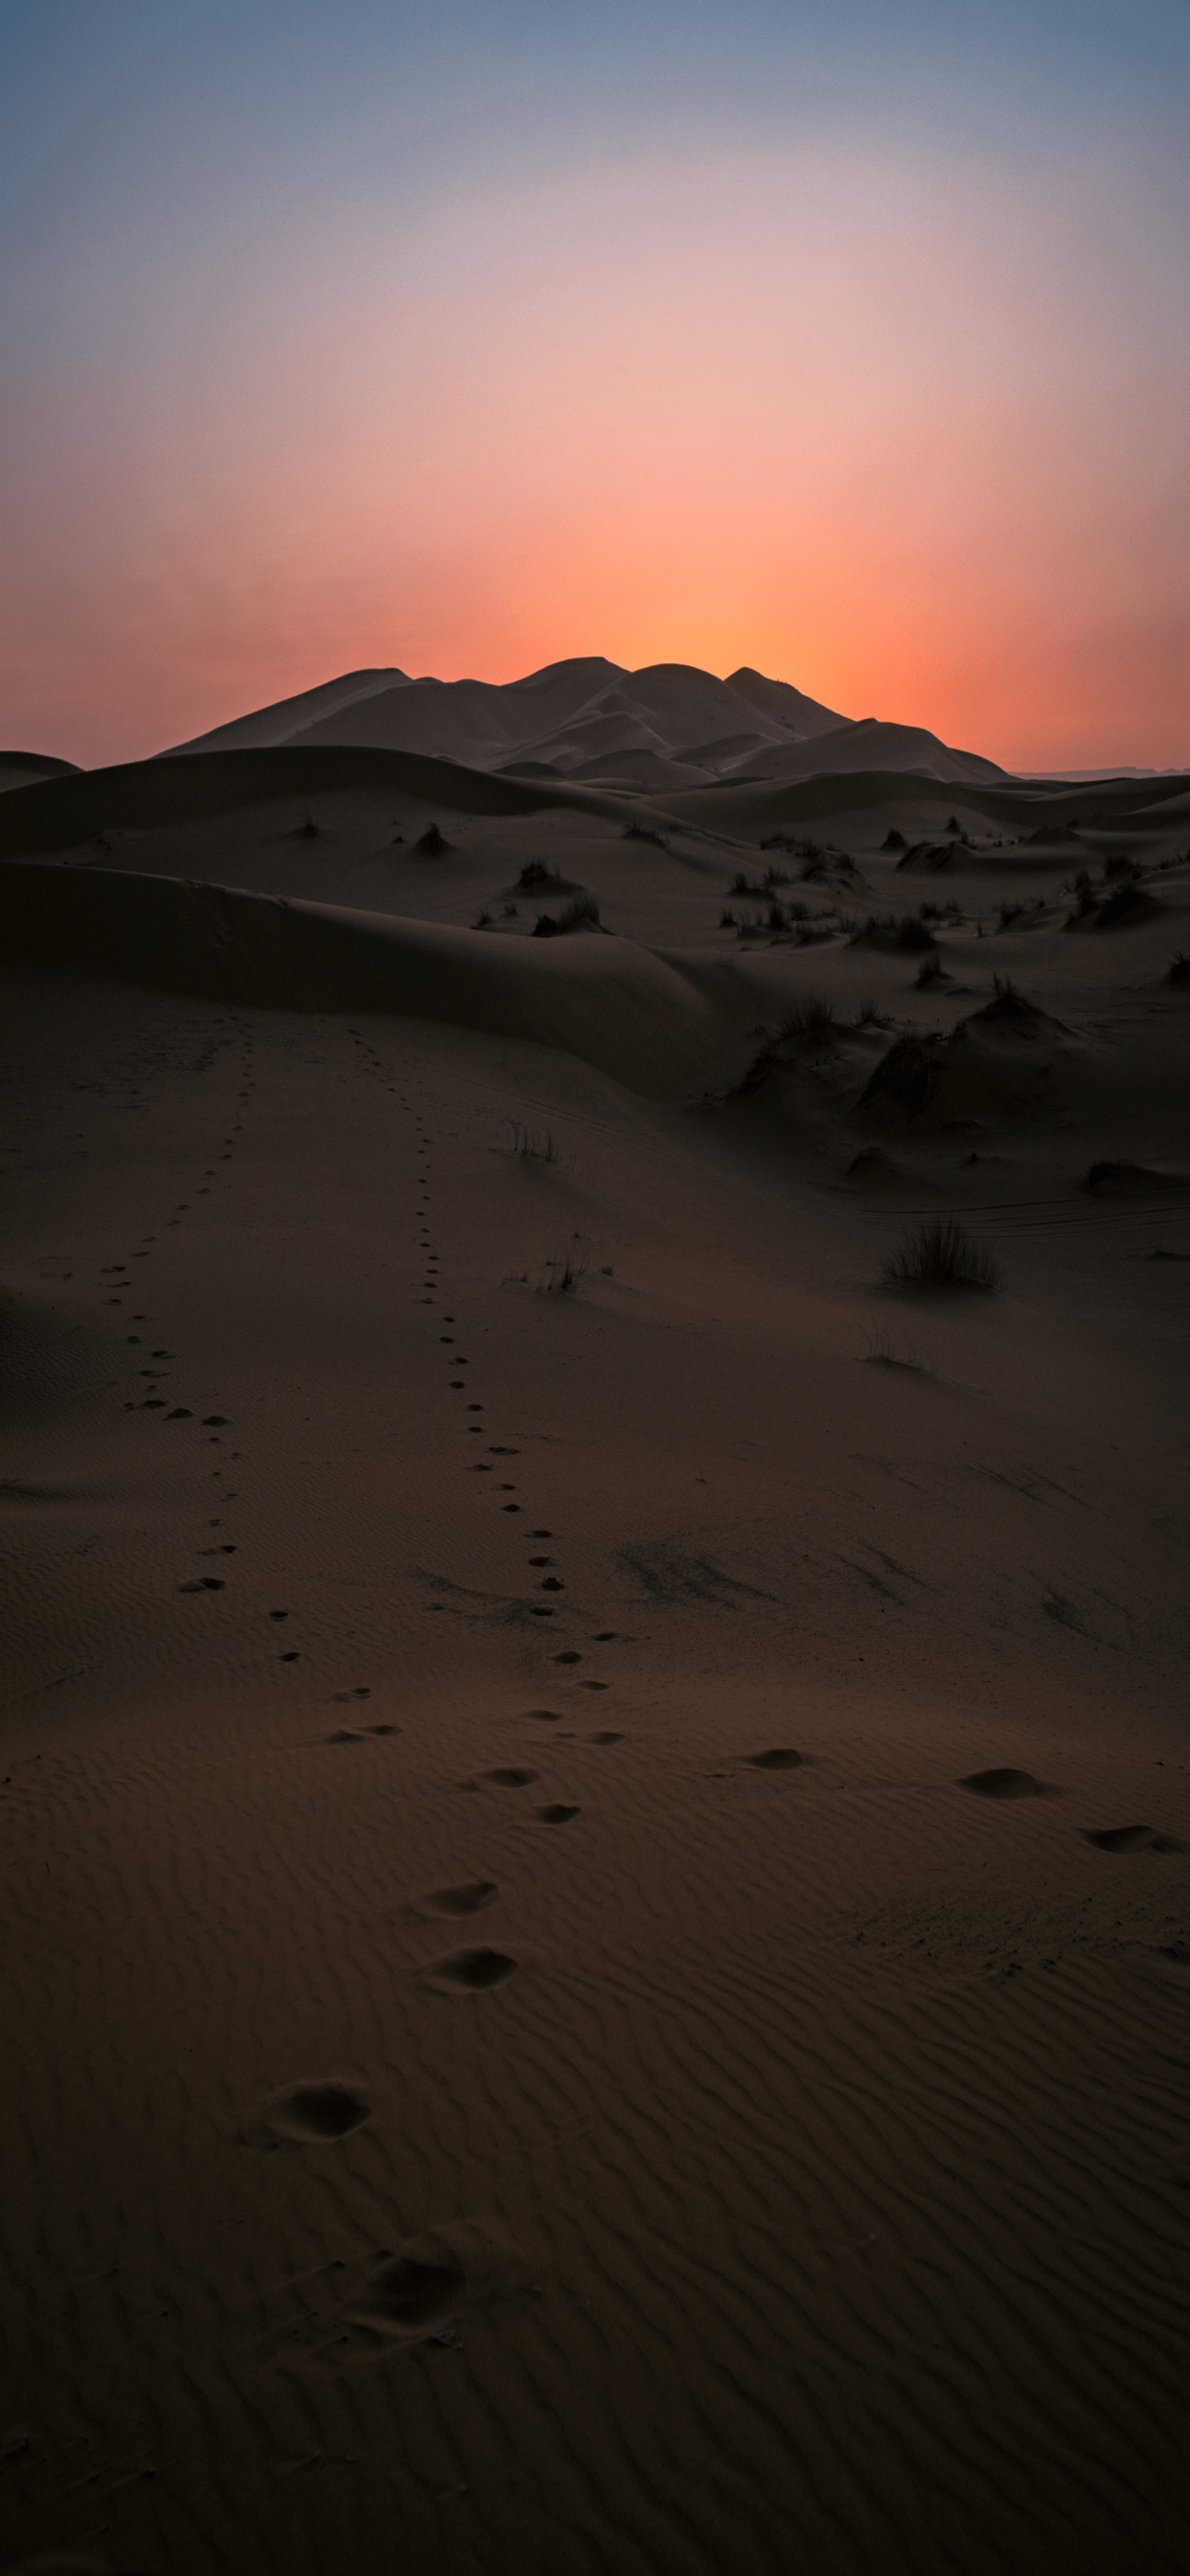 iPhone wallpaper morocco desert sunset Morocco